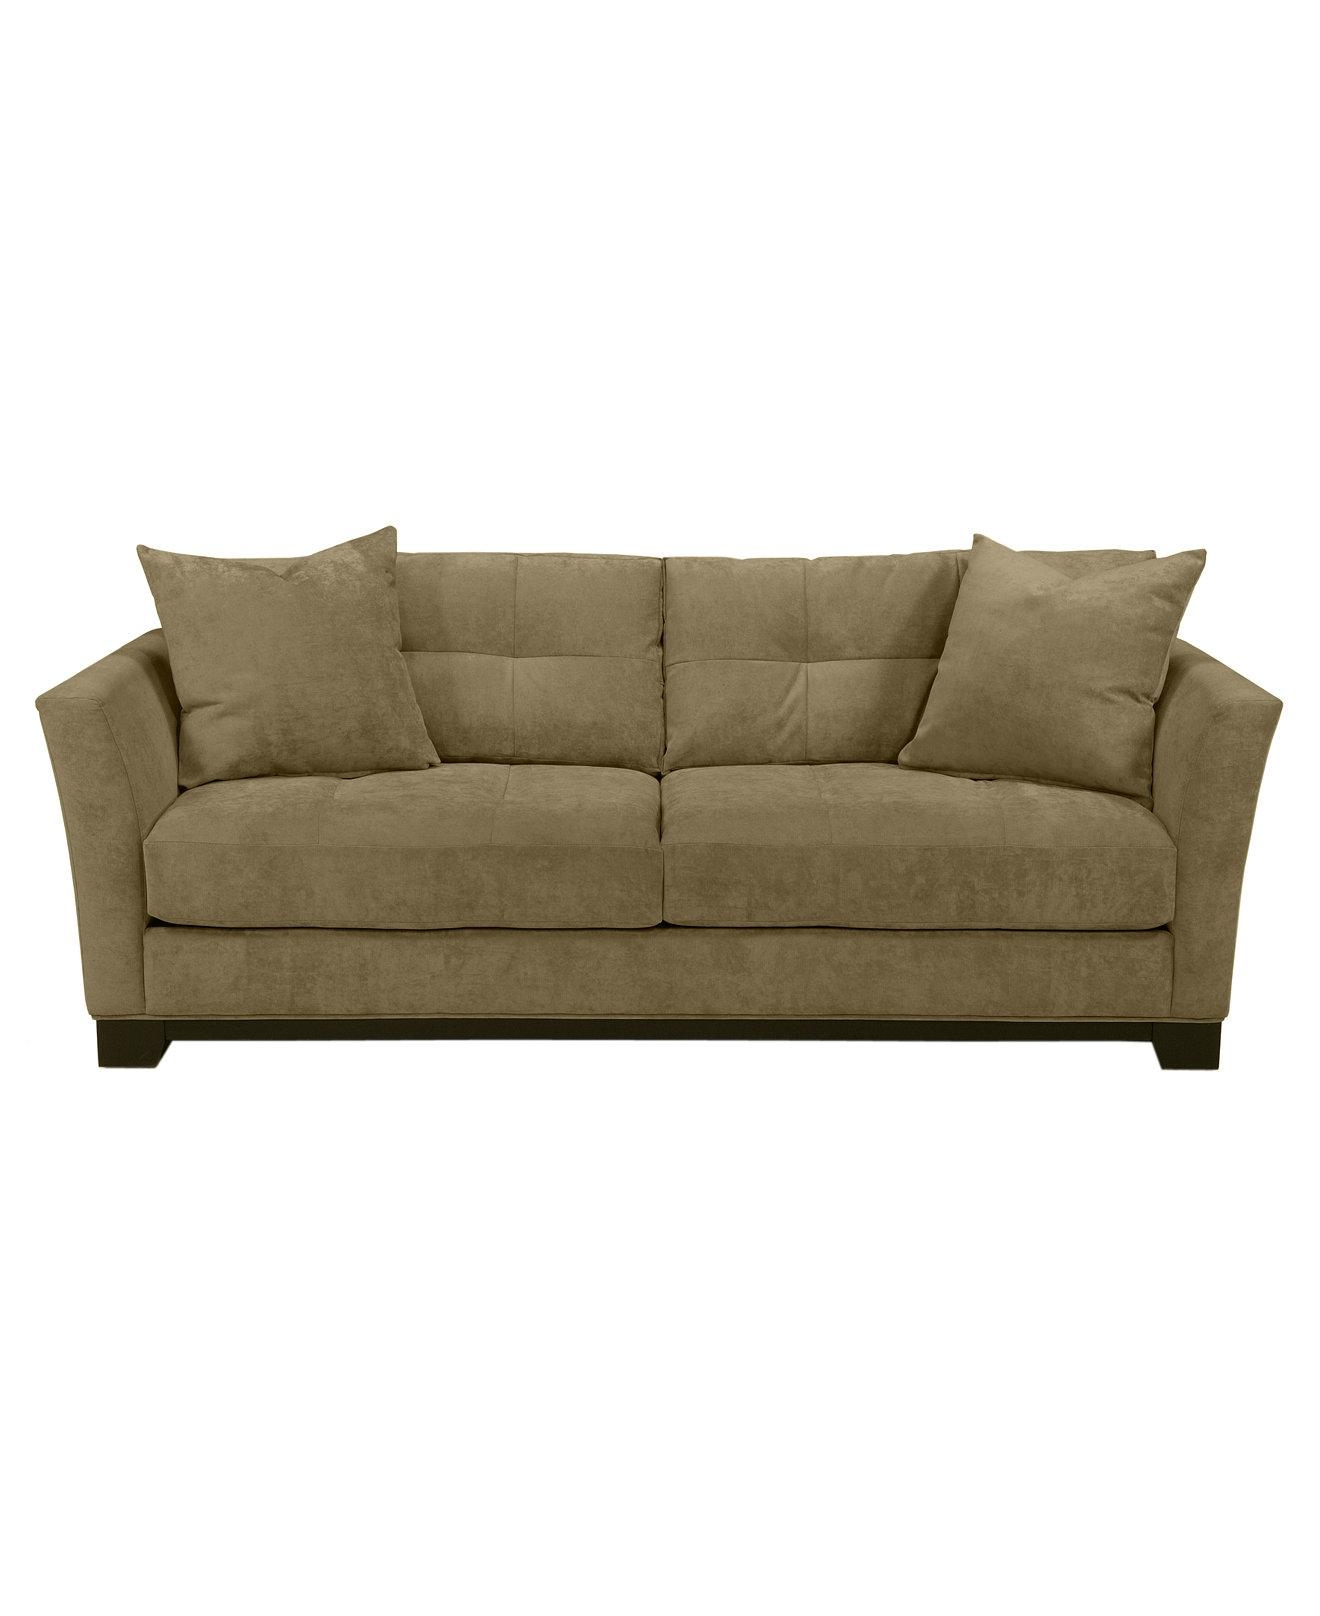 Amusing Microfiber Queen Sleeper Sofa 50 In Cindy Crawford Sleeper With Cindy Crawford Sleeper Sofas (Image 4 of 20)